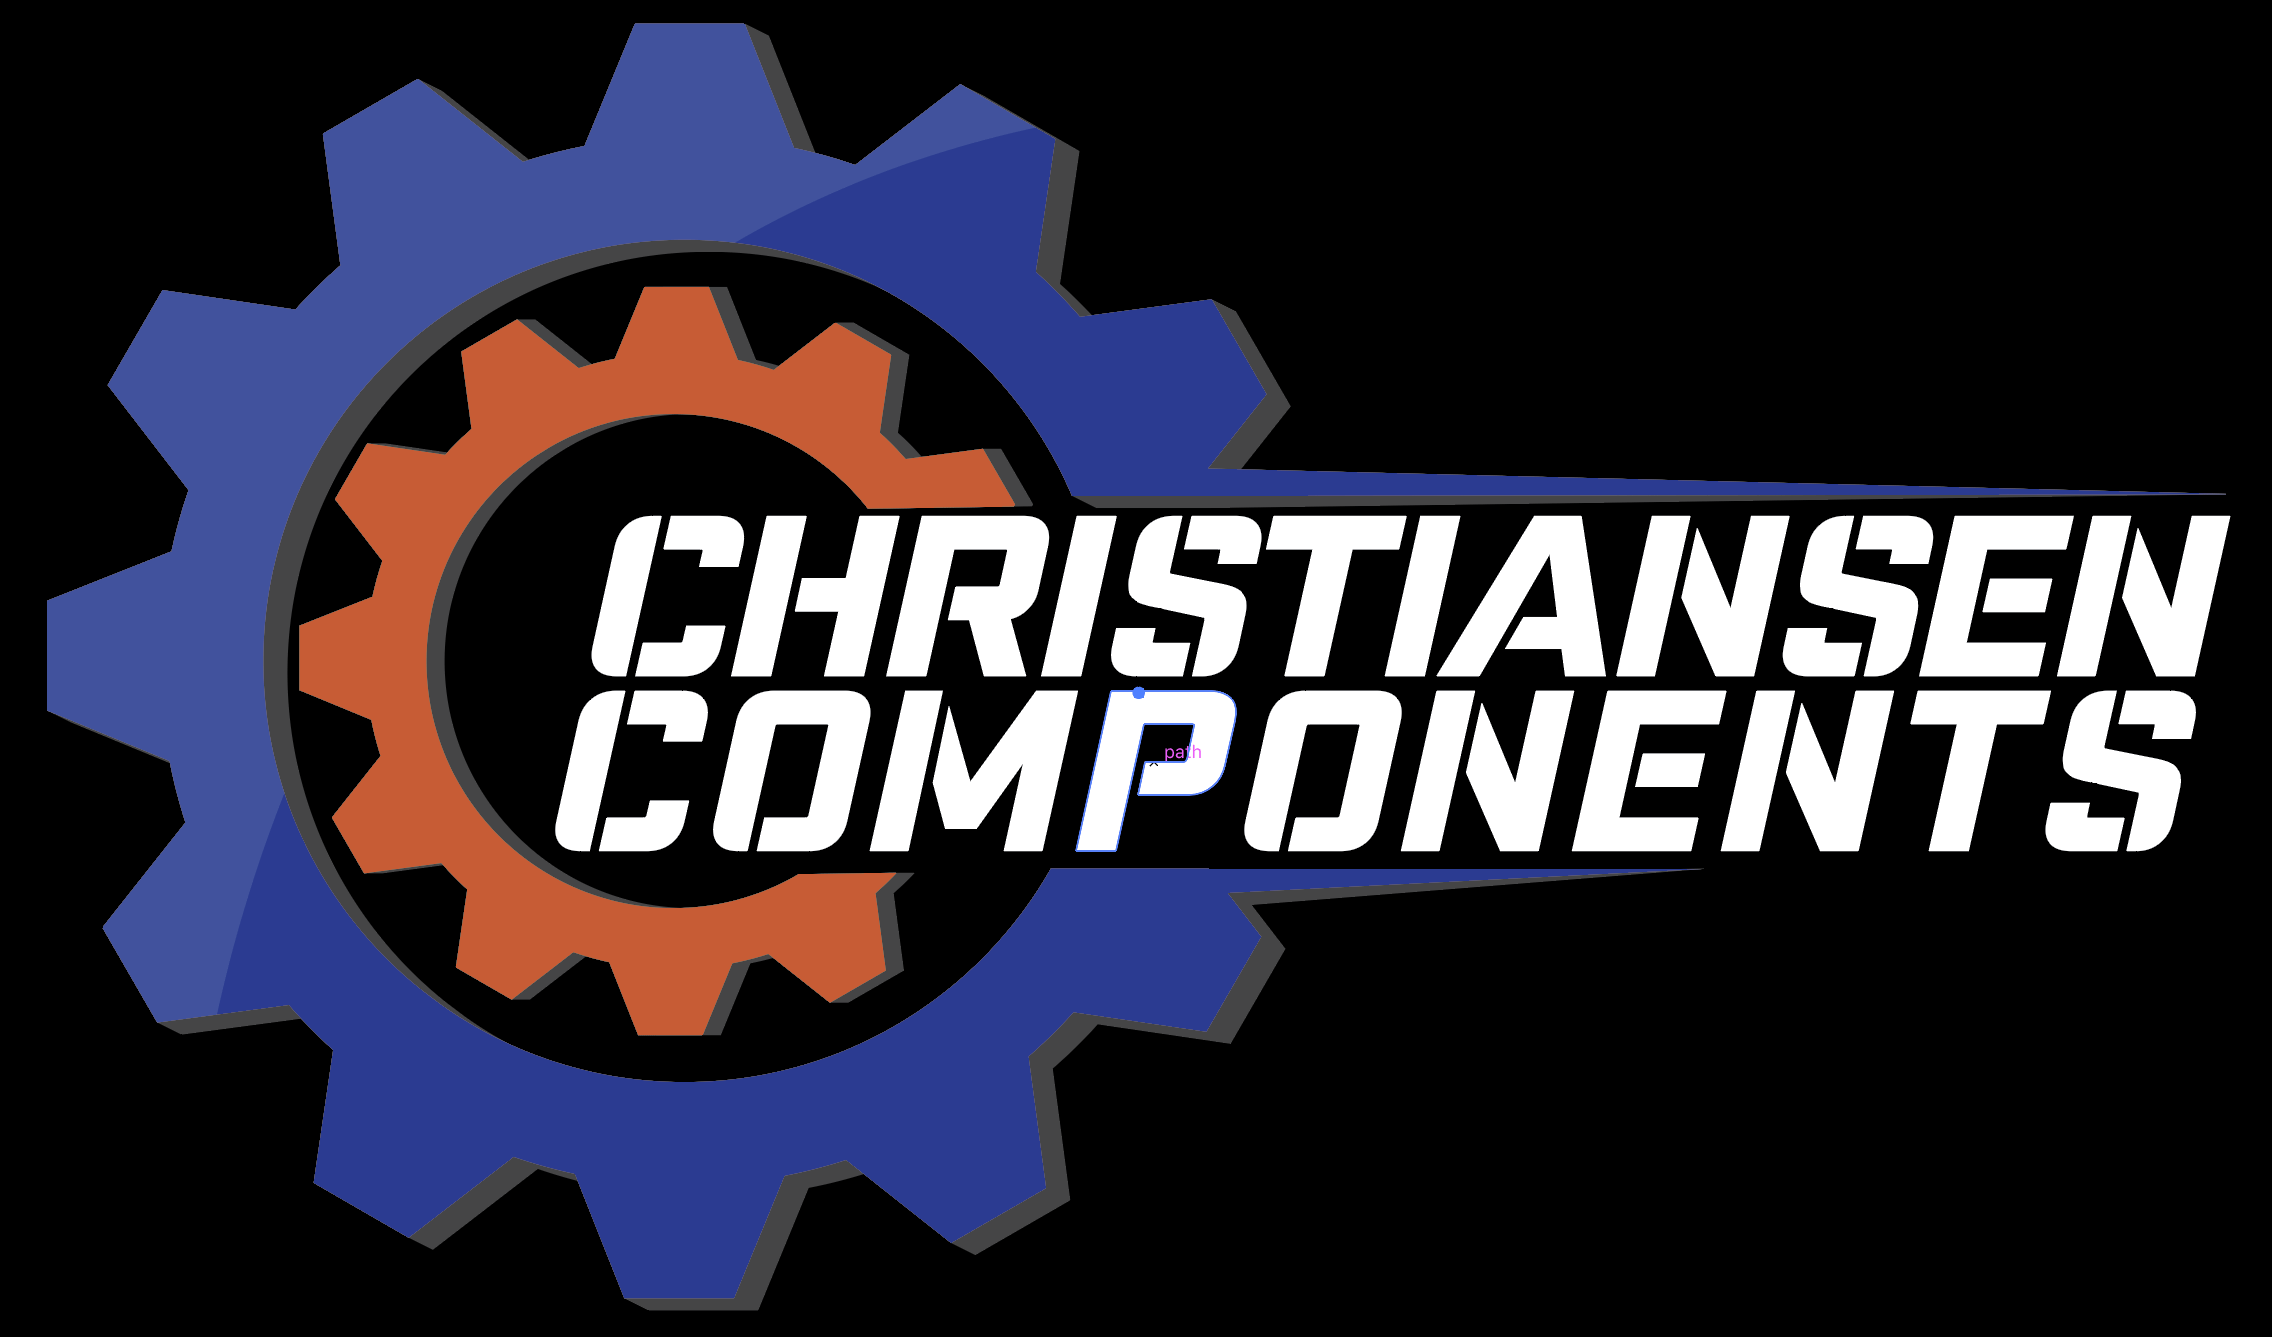 Christiansen Components